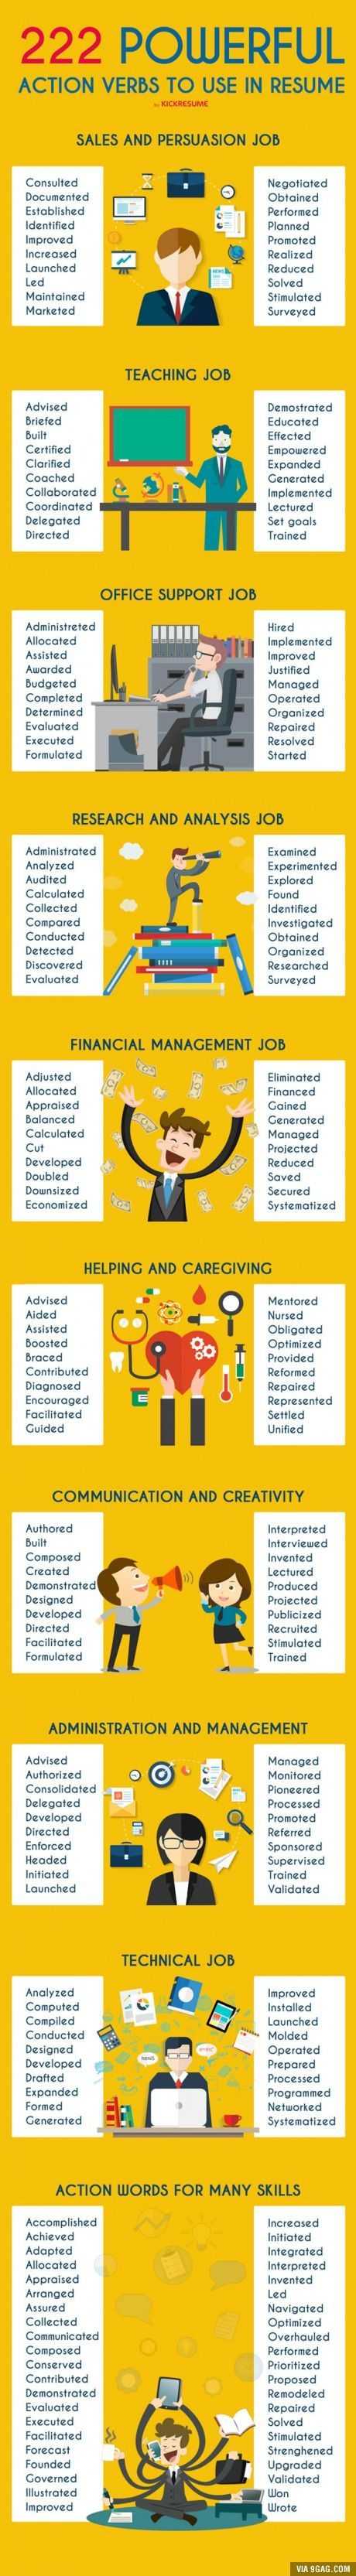 Resume Cheat Sheet: 222 Action Verbs To Use In Your New Resume Repinned by Chesapeake College Adult Ed. Free classes on the Eastern Shore of MD to help you earn your GED - H.S. Diploma or Learn English (ESL). www.Chesapeake.edu